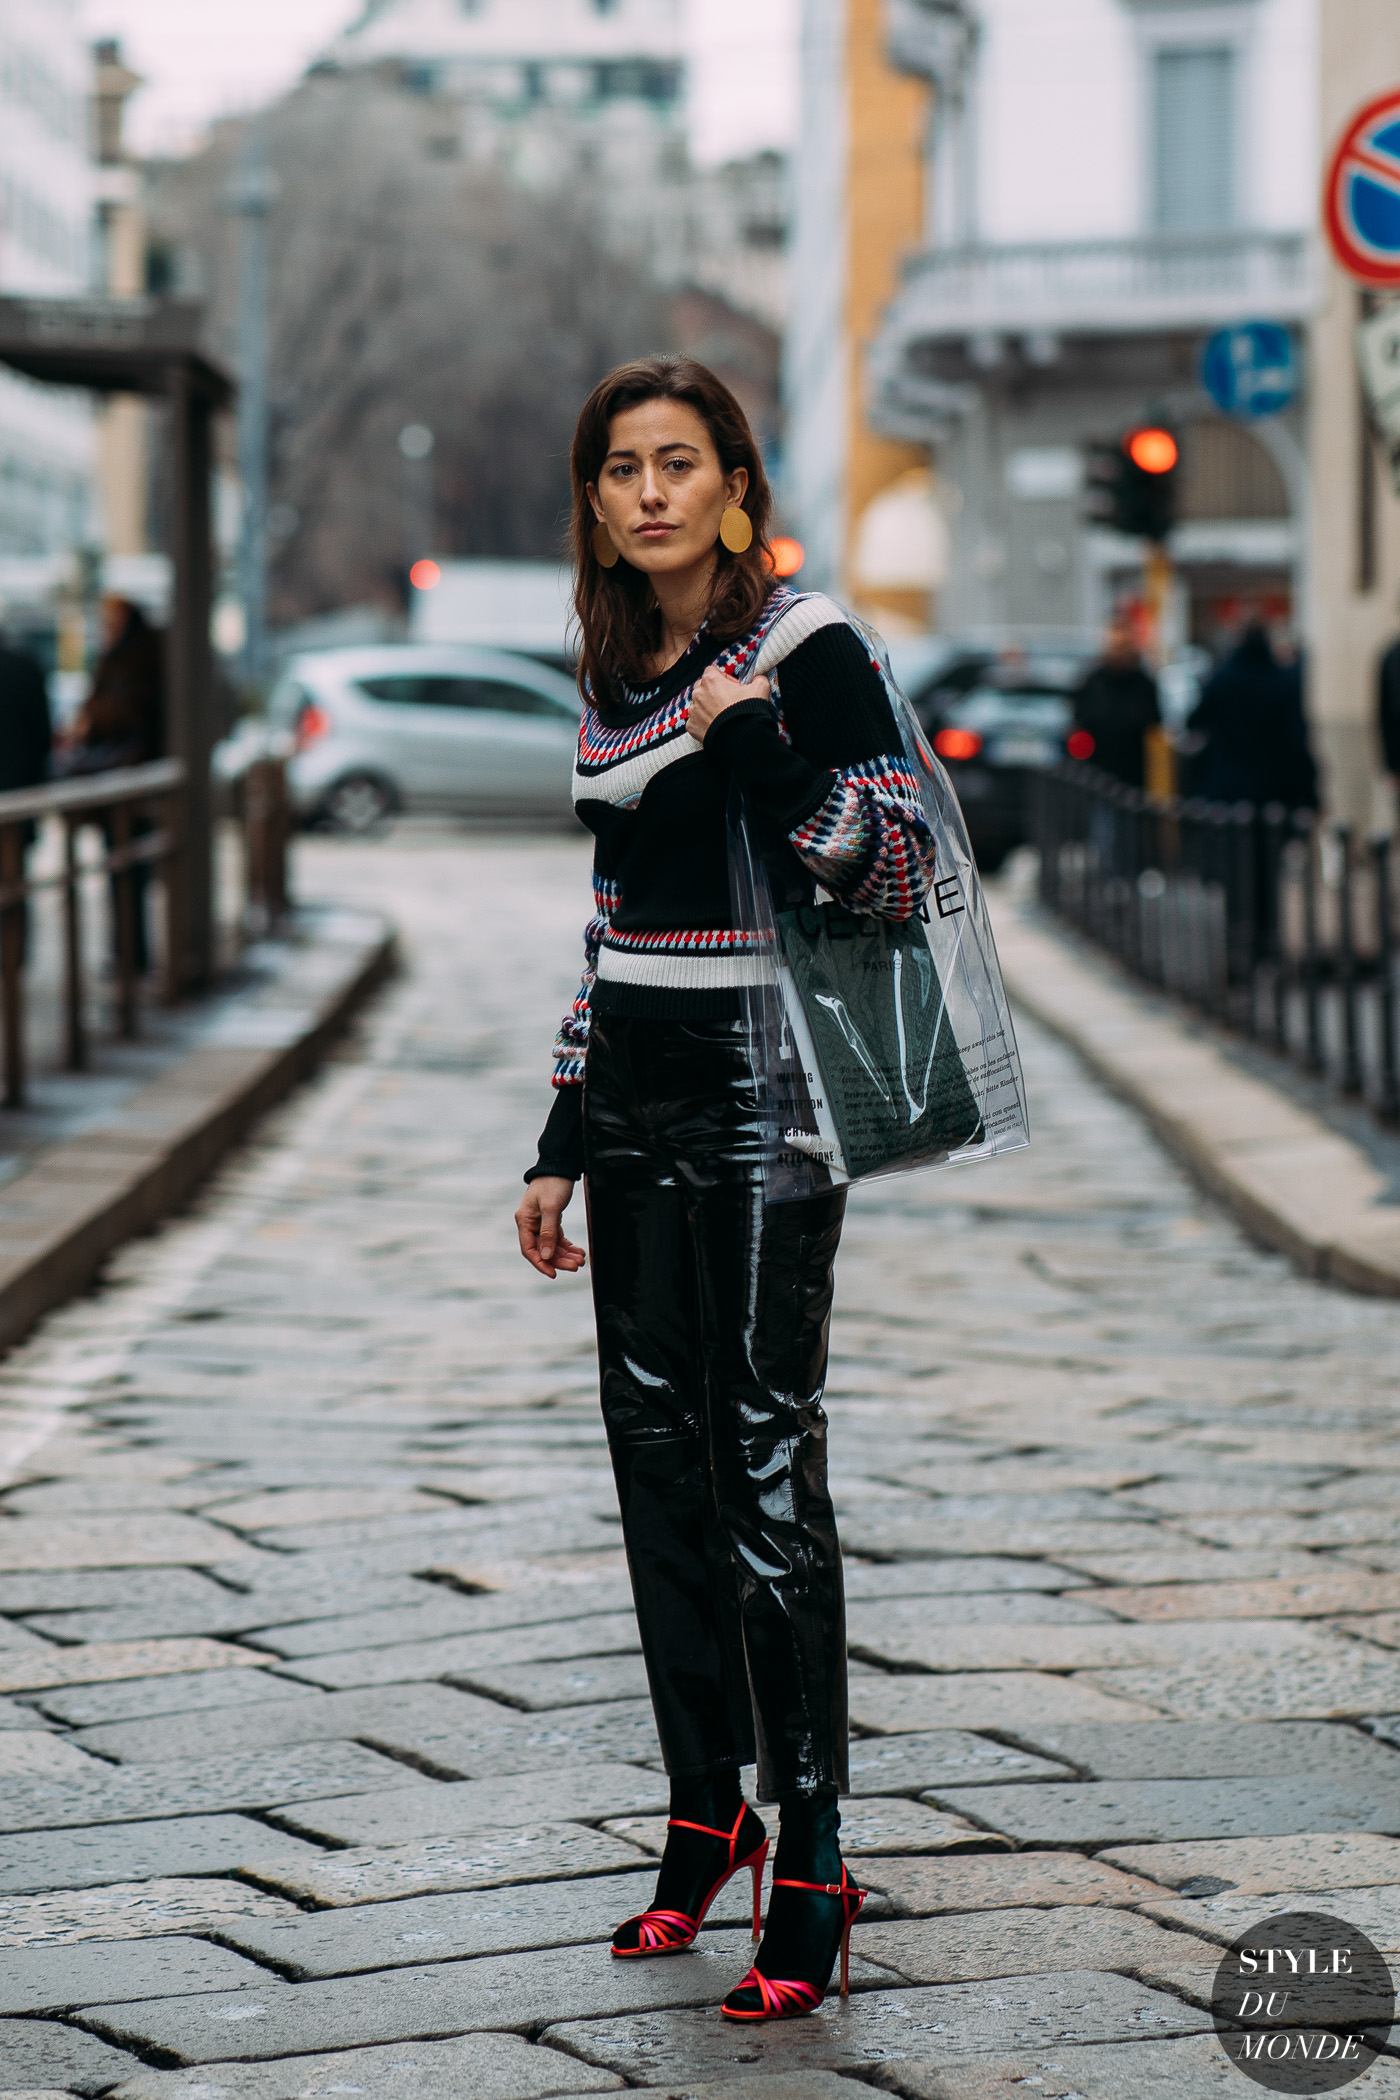 Sylvia Haghjoo by STYLEDUMONDE Street Style Fashion Photography FW18 20180223_48A6864